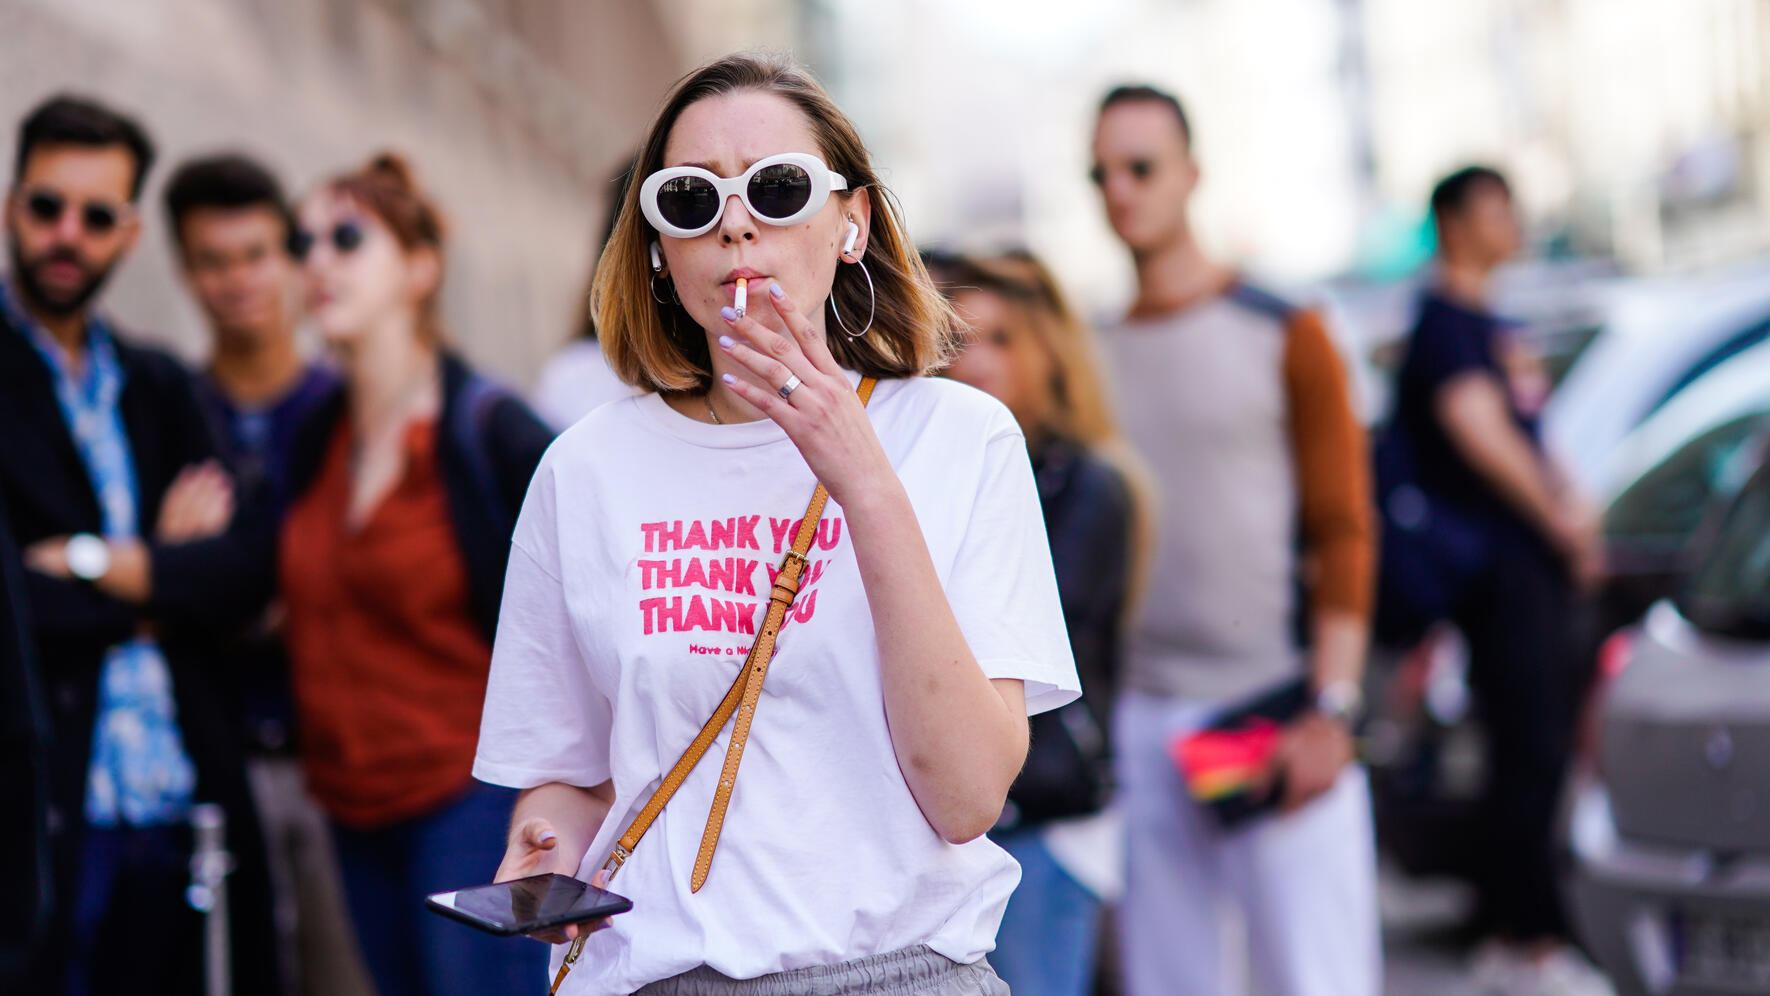 """PARIS, FRANCE - JUNE 23:  A guest wears a white t-shirt with printed words """"thank you"""", white sunglasses, outside Wooyoungmi, during Paris Fashion Week - Menswear Spring-Summer 2019, on June 23, 2018 in Paris, France.  (Photo by Edward Berthelot/Getty Images)"""